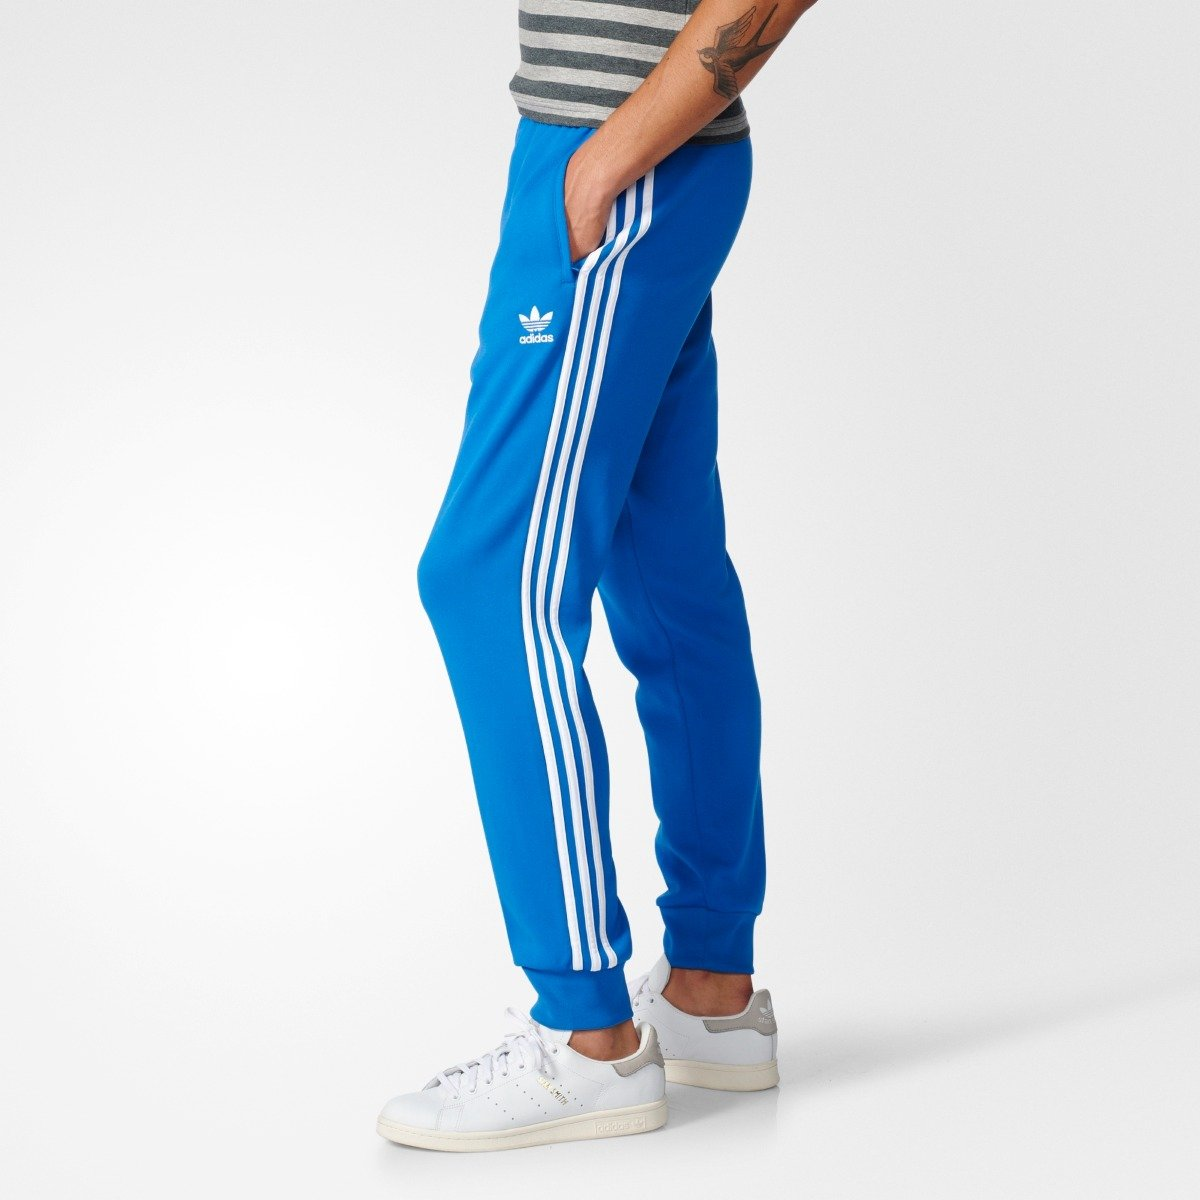 e57c13943470 Men s adidas Originals SST Cuffed Track Pants Blue BK5932